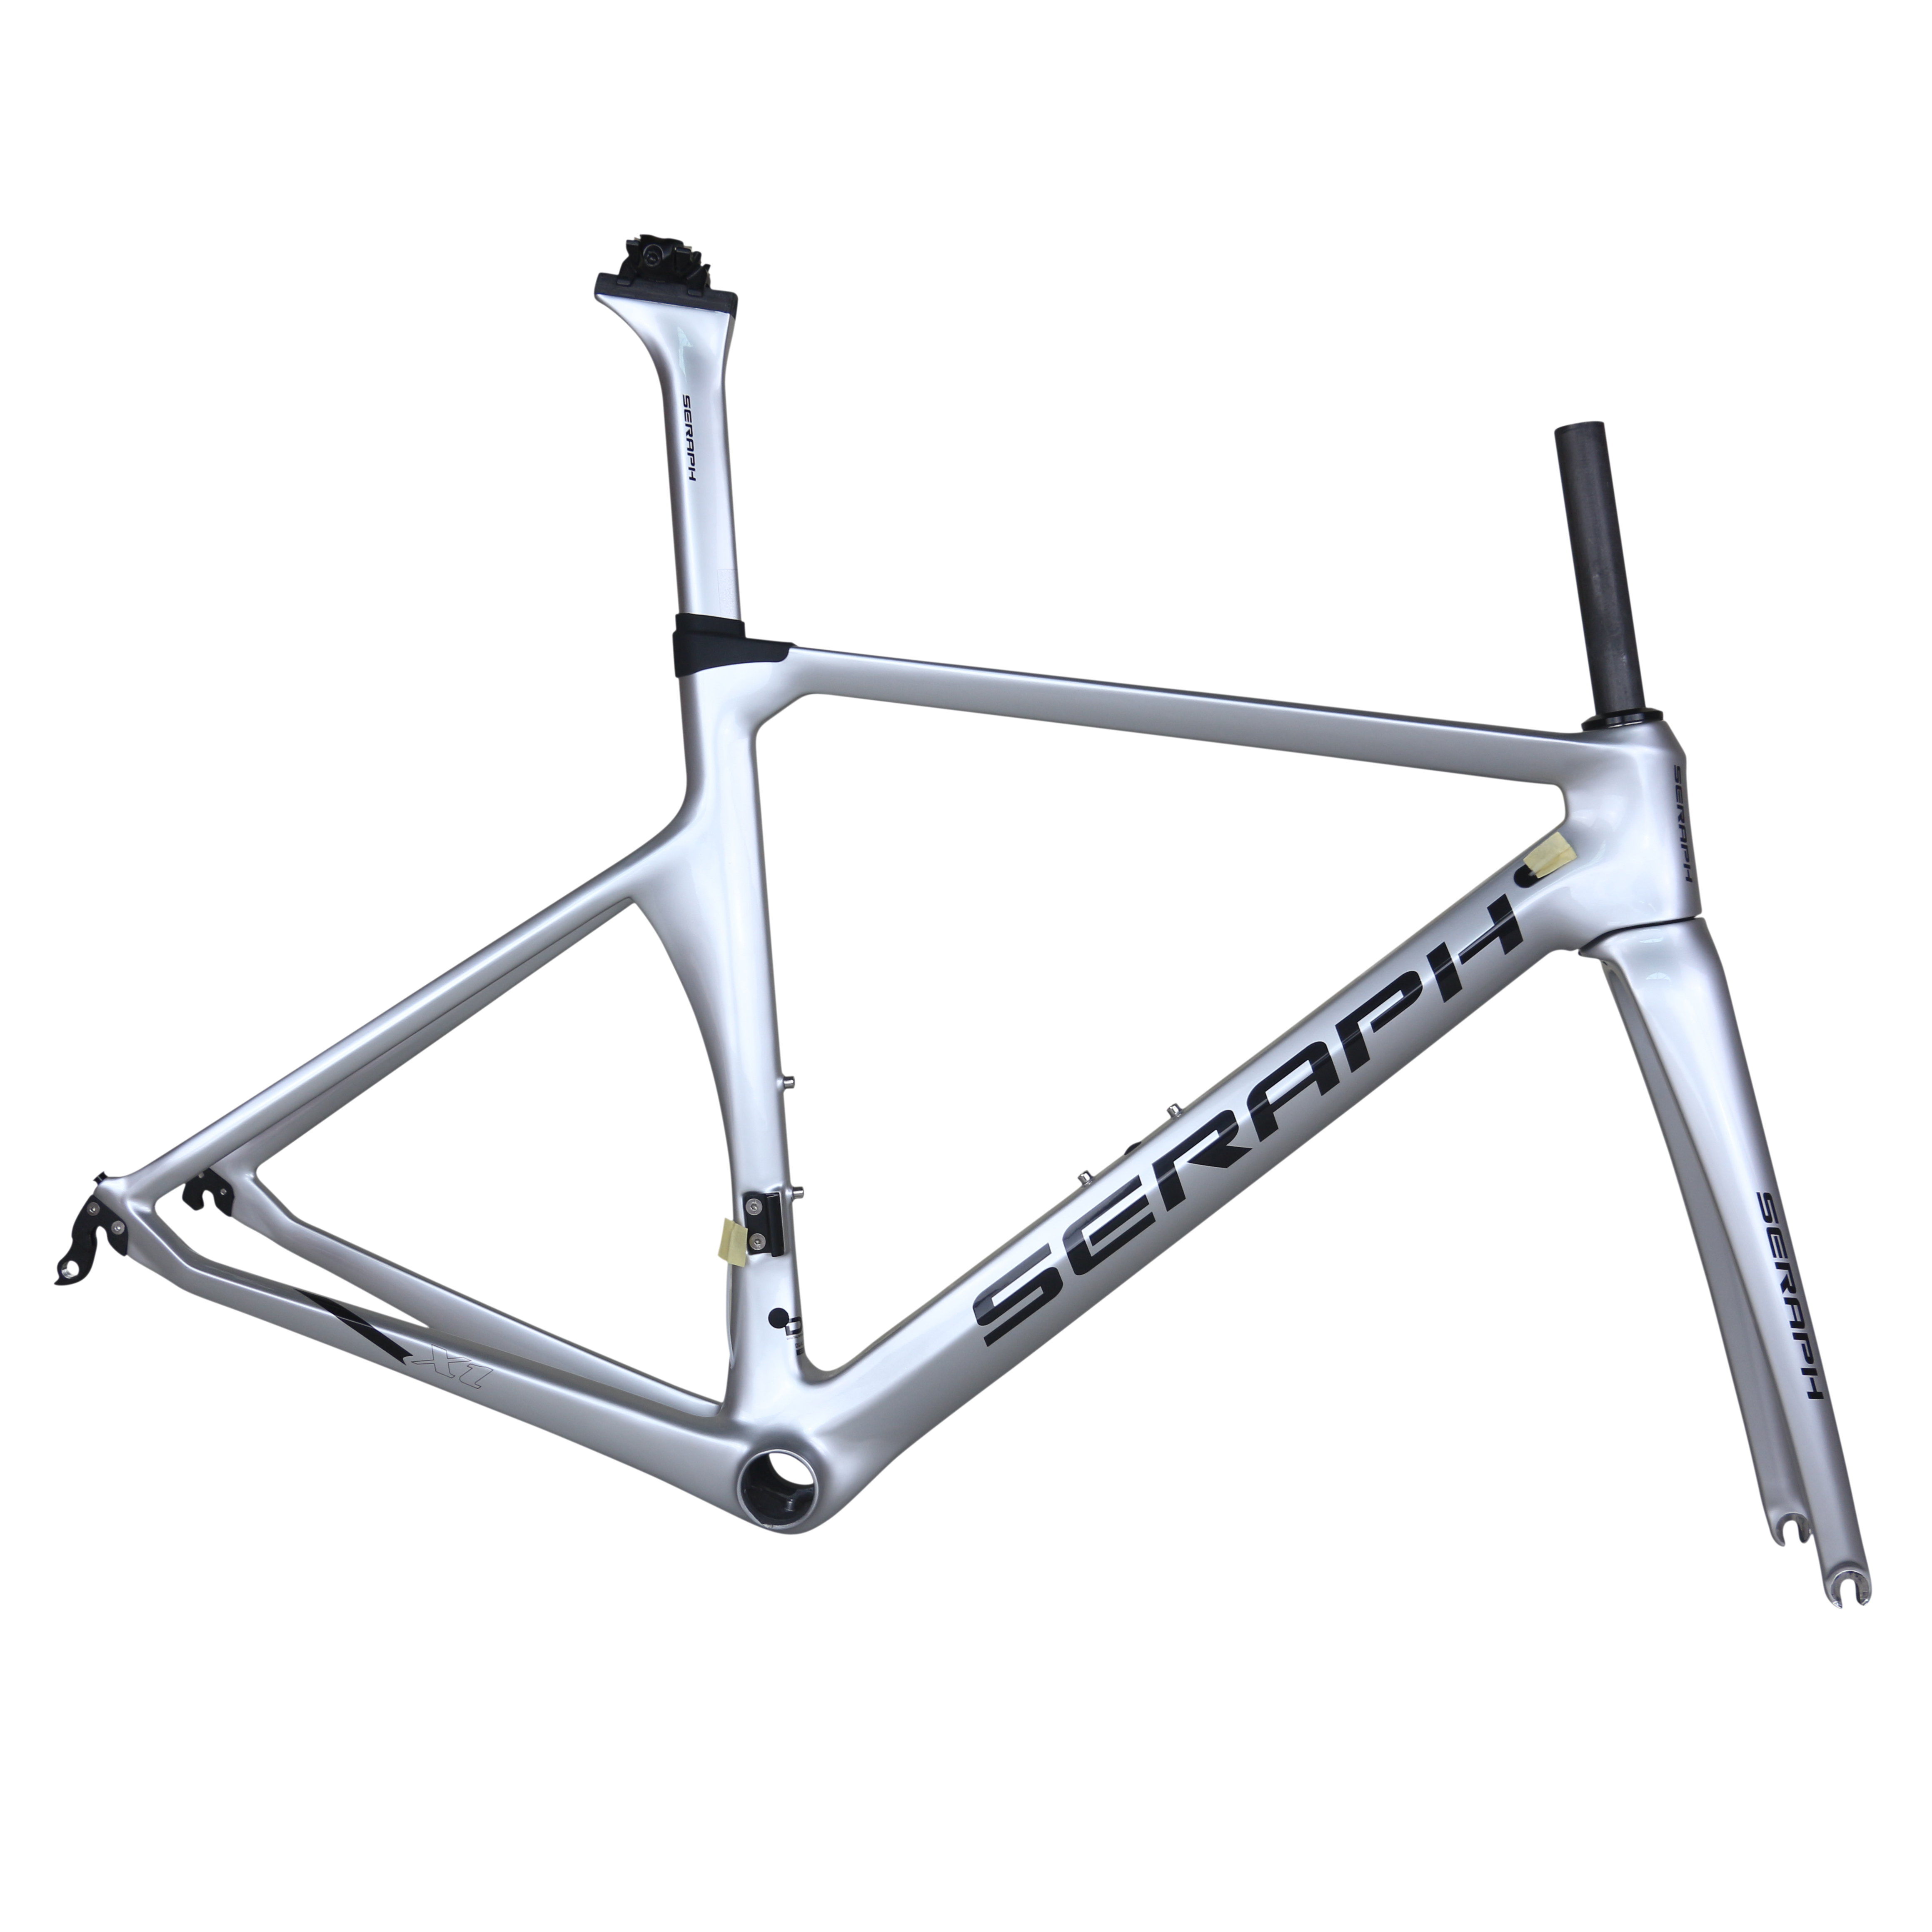 2019 New Silver Aero Carbon T800 Ud Bicycle Frame BB86 Road Bike Frame TT-X1 Accept Custom Paint